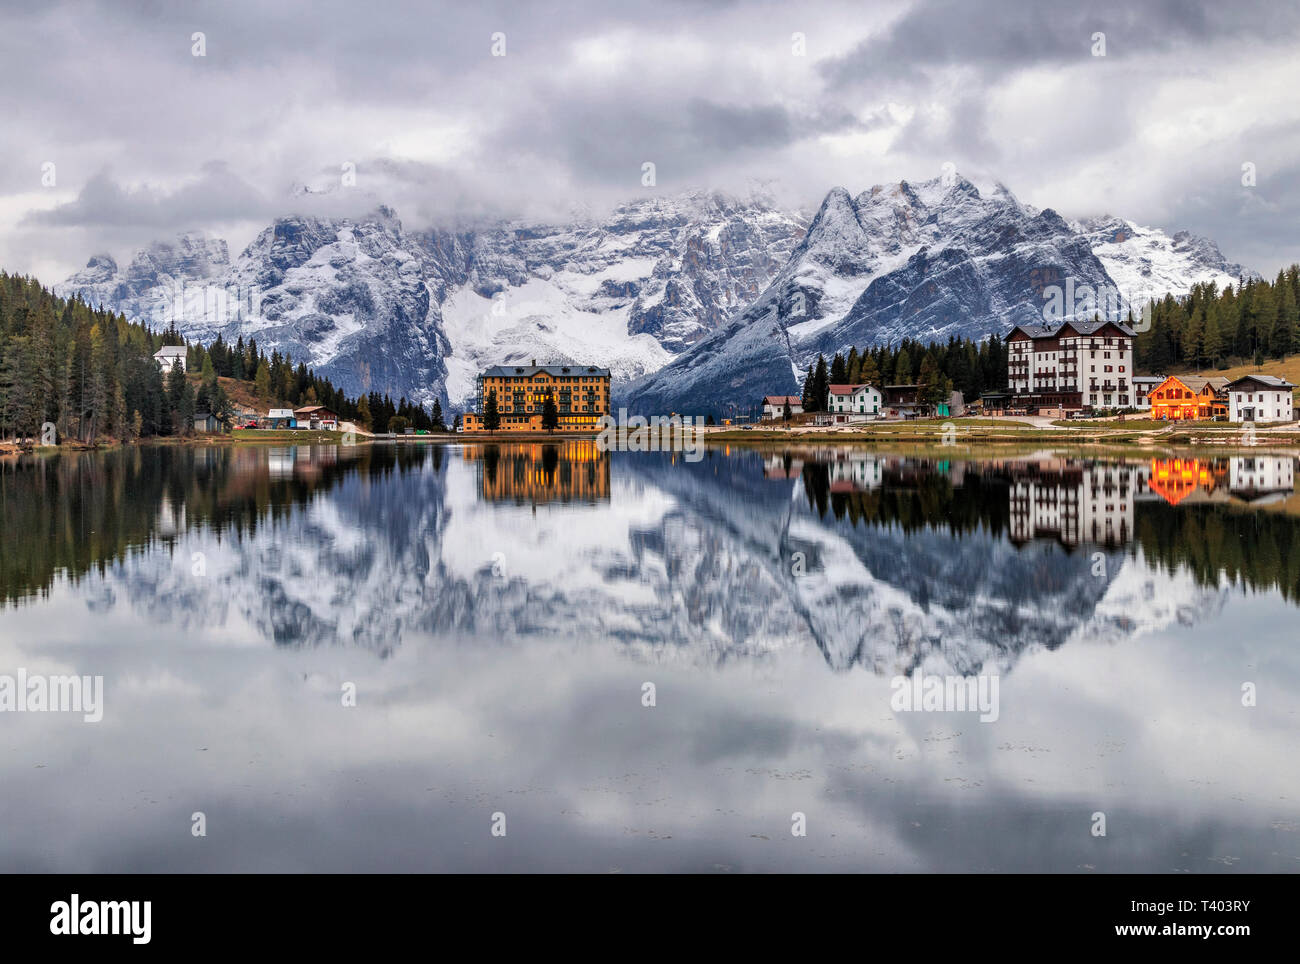 A tranquil view at sunrise of the Lake of Misurina, a lake in the Dolomiti d'Ampezzo, not far from the town of Cortina, with the majestic rocky walls  - Stock Image